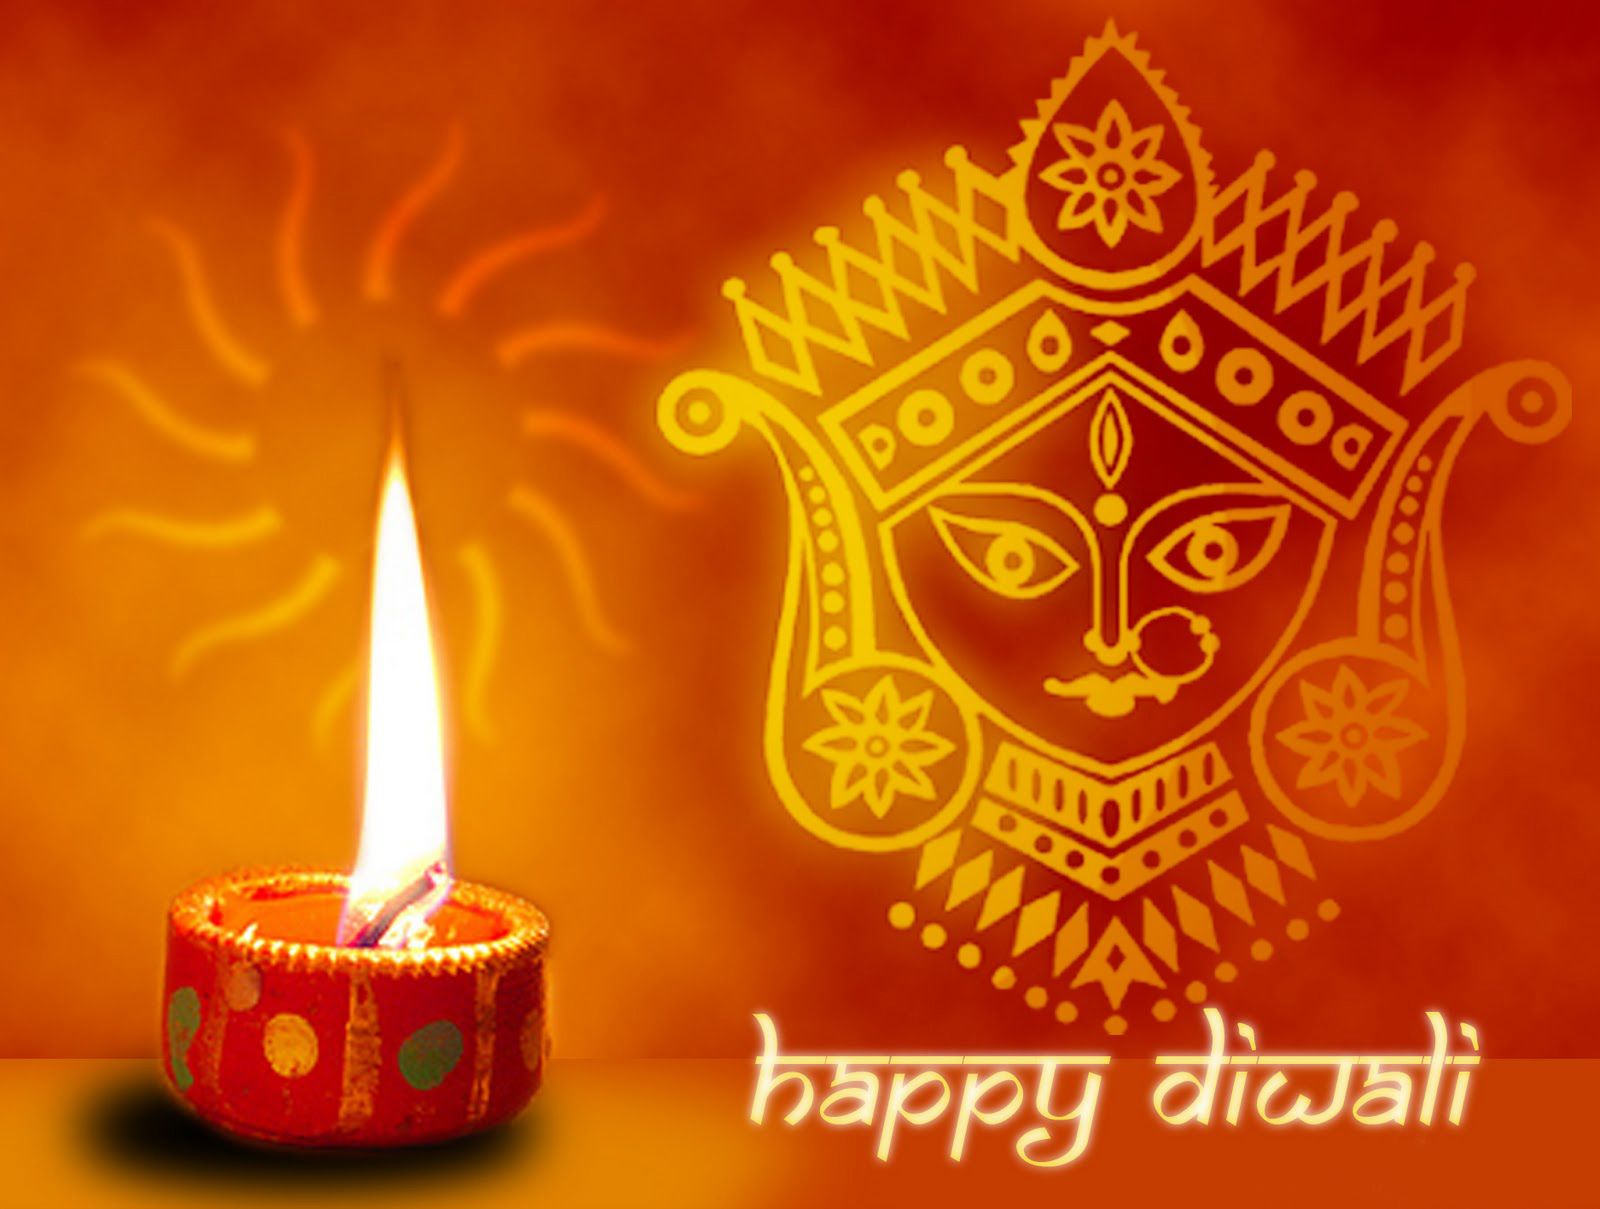 happy diwali celebration festival hd happy diwali hd happy diwali celebration festival hd